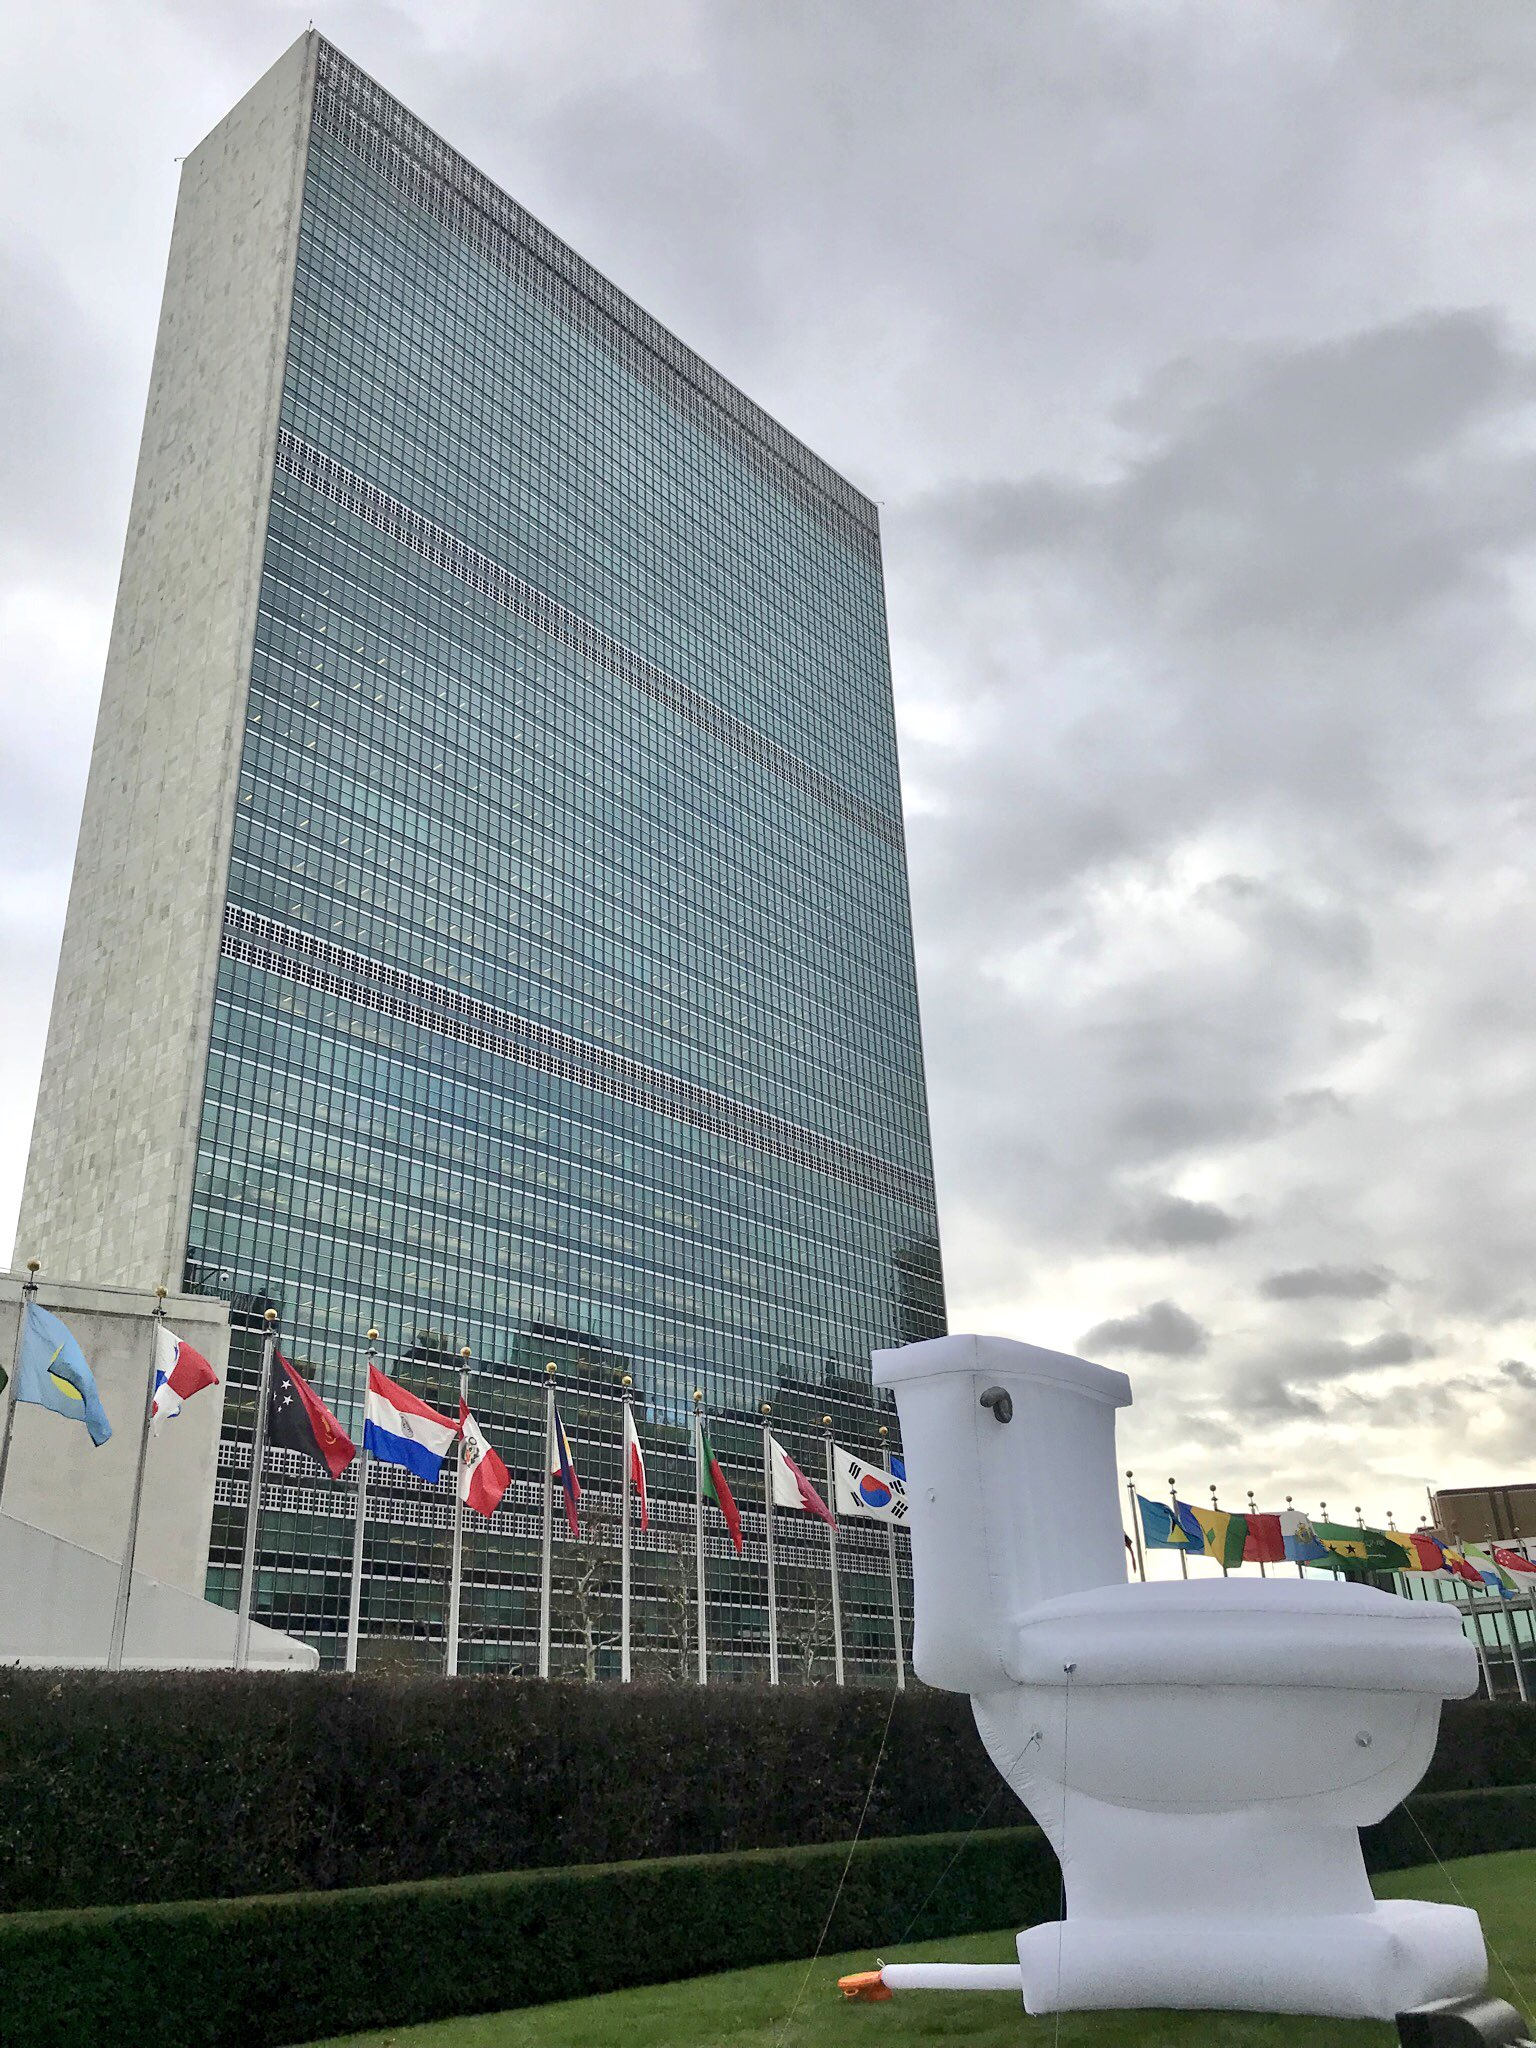 Why is there a giant �� in front of UN Headquarters in NYC?   Find out here: https://t.co/PNzplfm5qW https://t.co/I31jCVPE3y